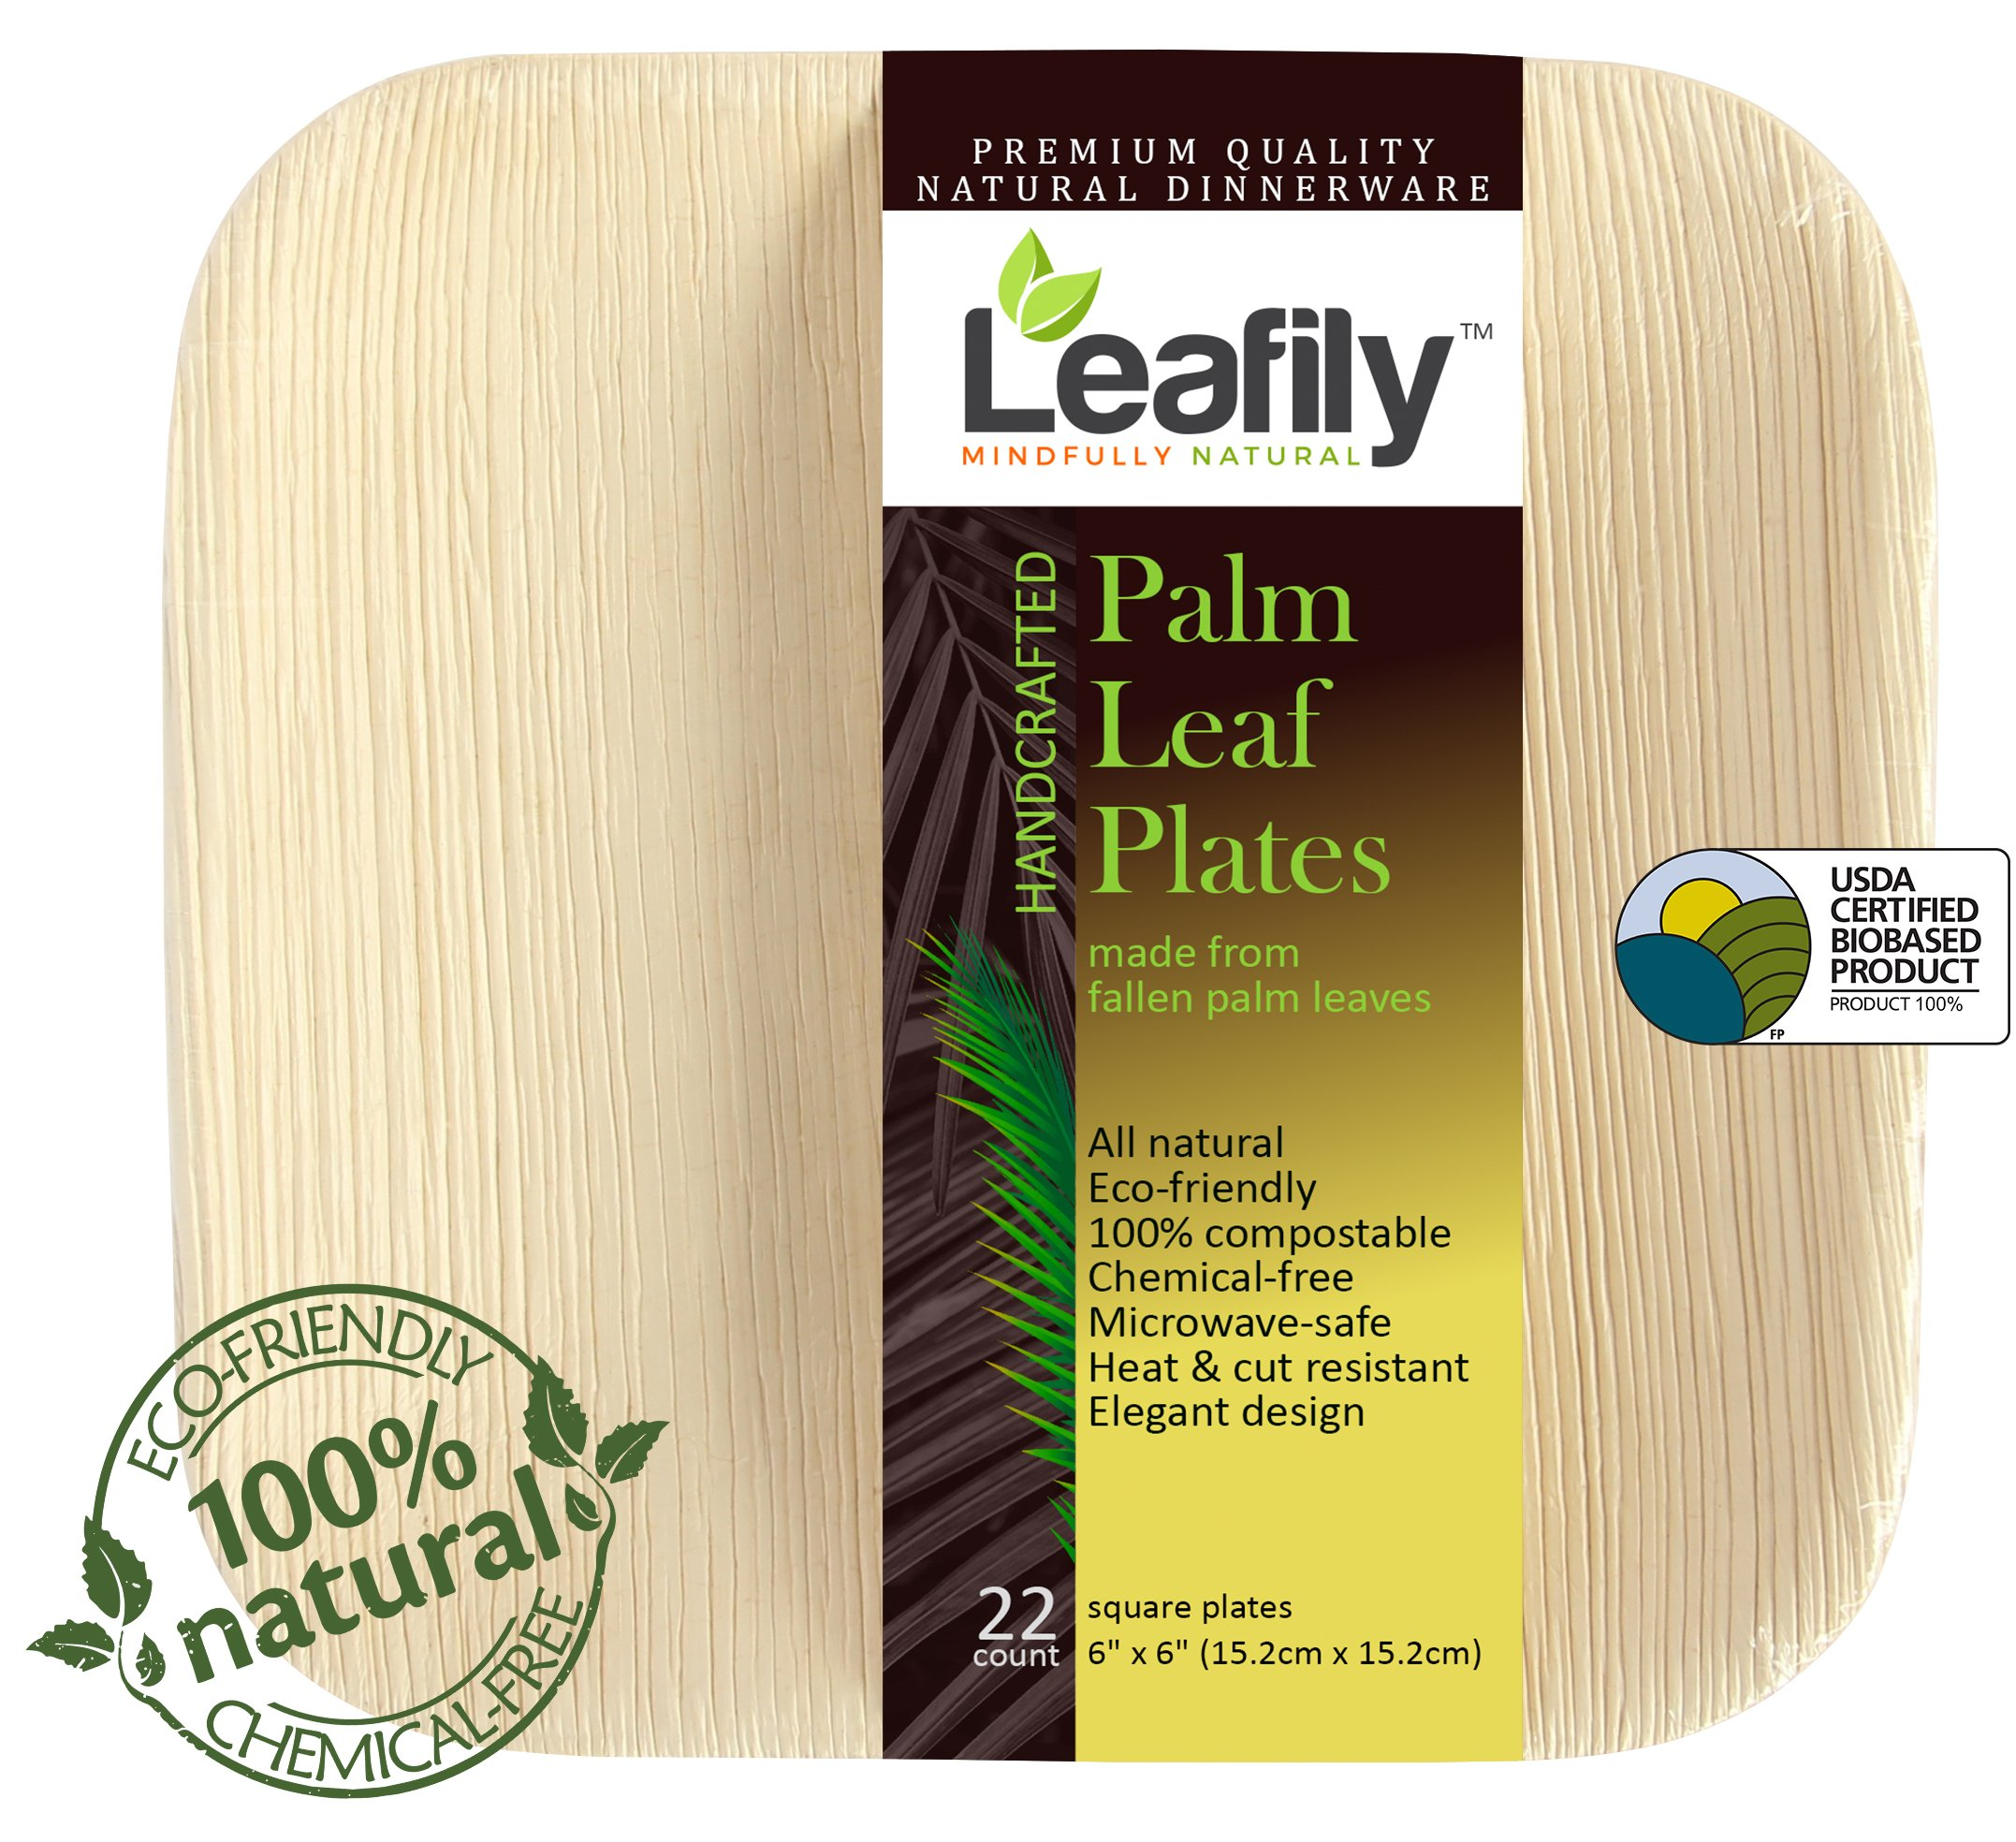 Leafily Palm Leaf Plates - 6 inch Square - Heavy Duty - Elegant - 100% Compostable - Better than Bamboo or Wood - Disposable - Biodegradable - Premium Party Plates - USDA Certified - 22 Count by Leafily (Image #8)